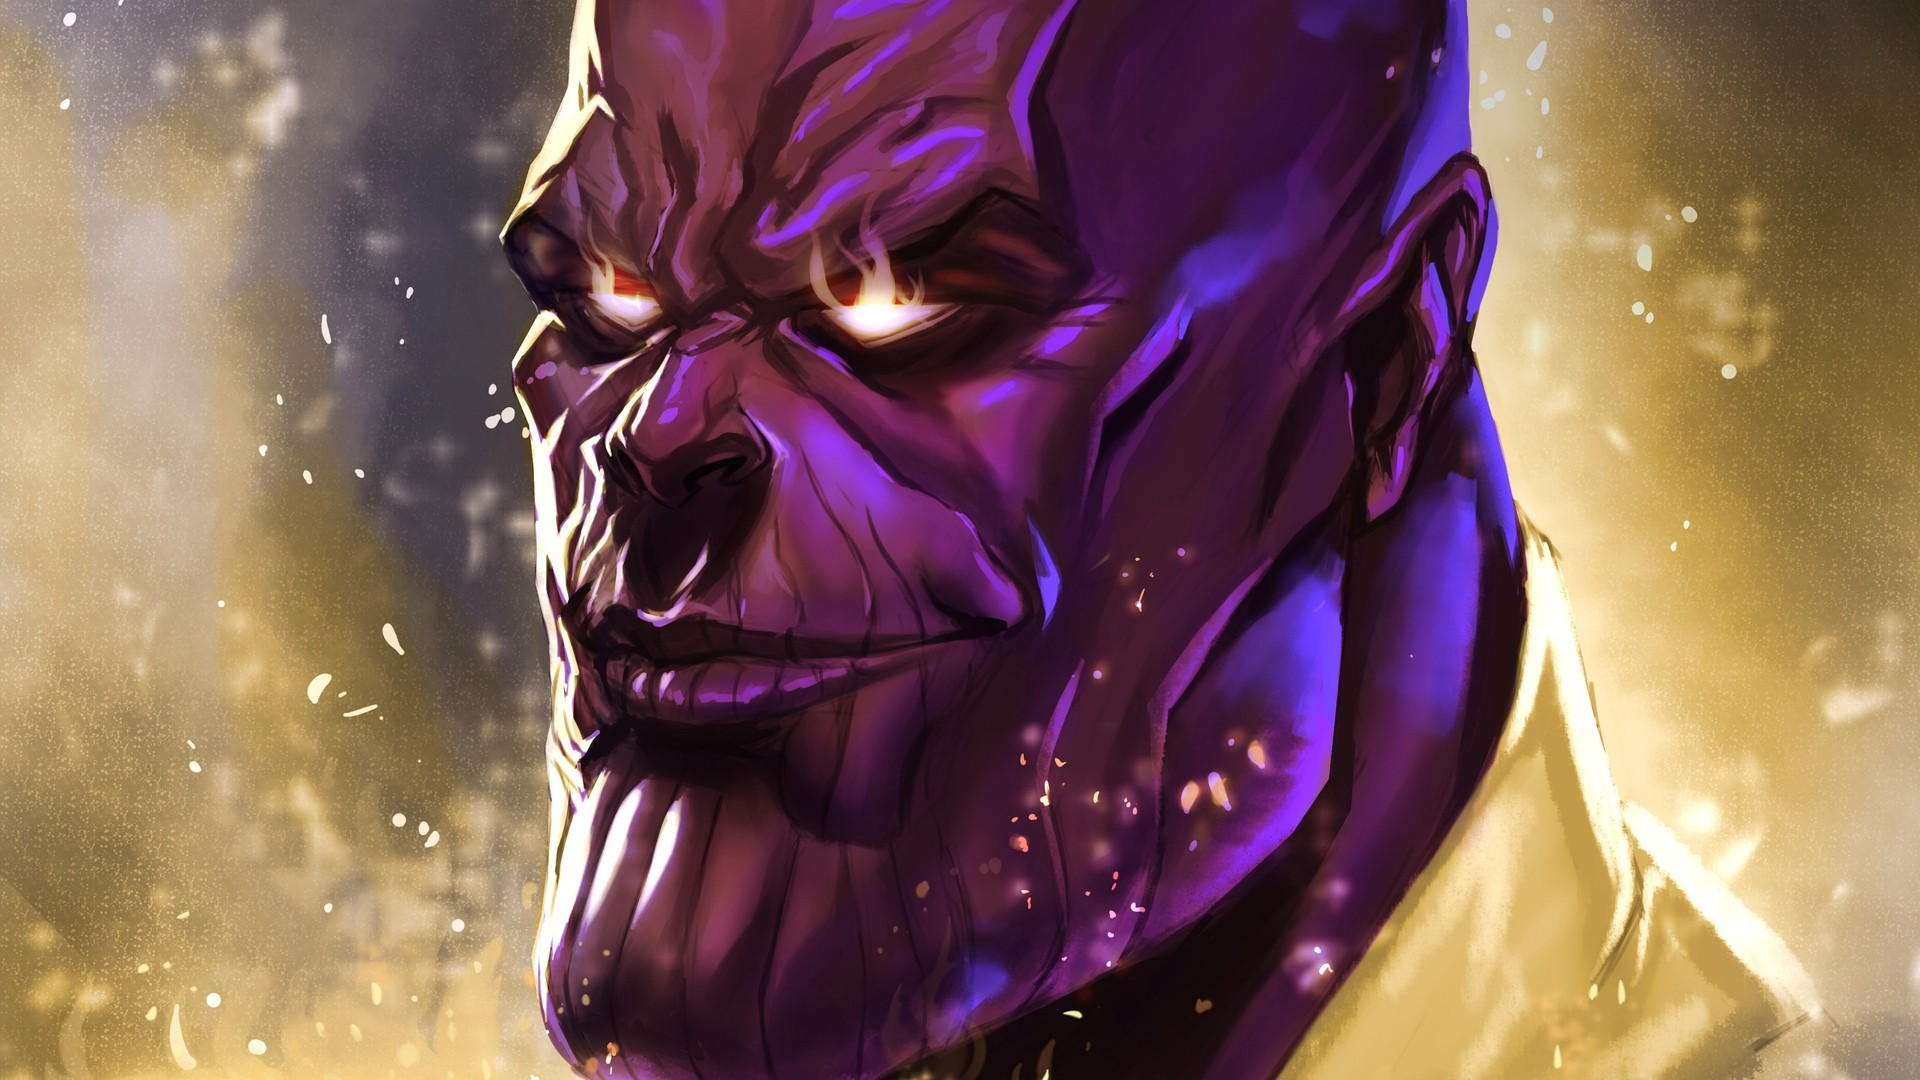 Thanos Desktop Wallpaper